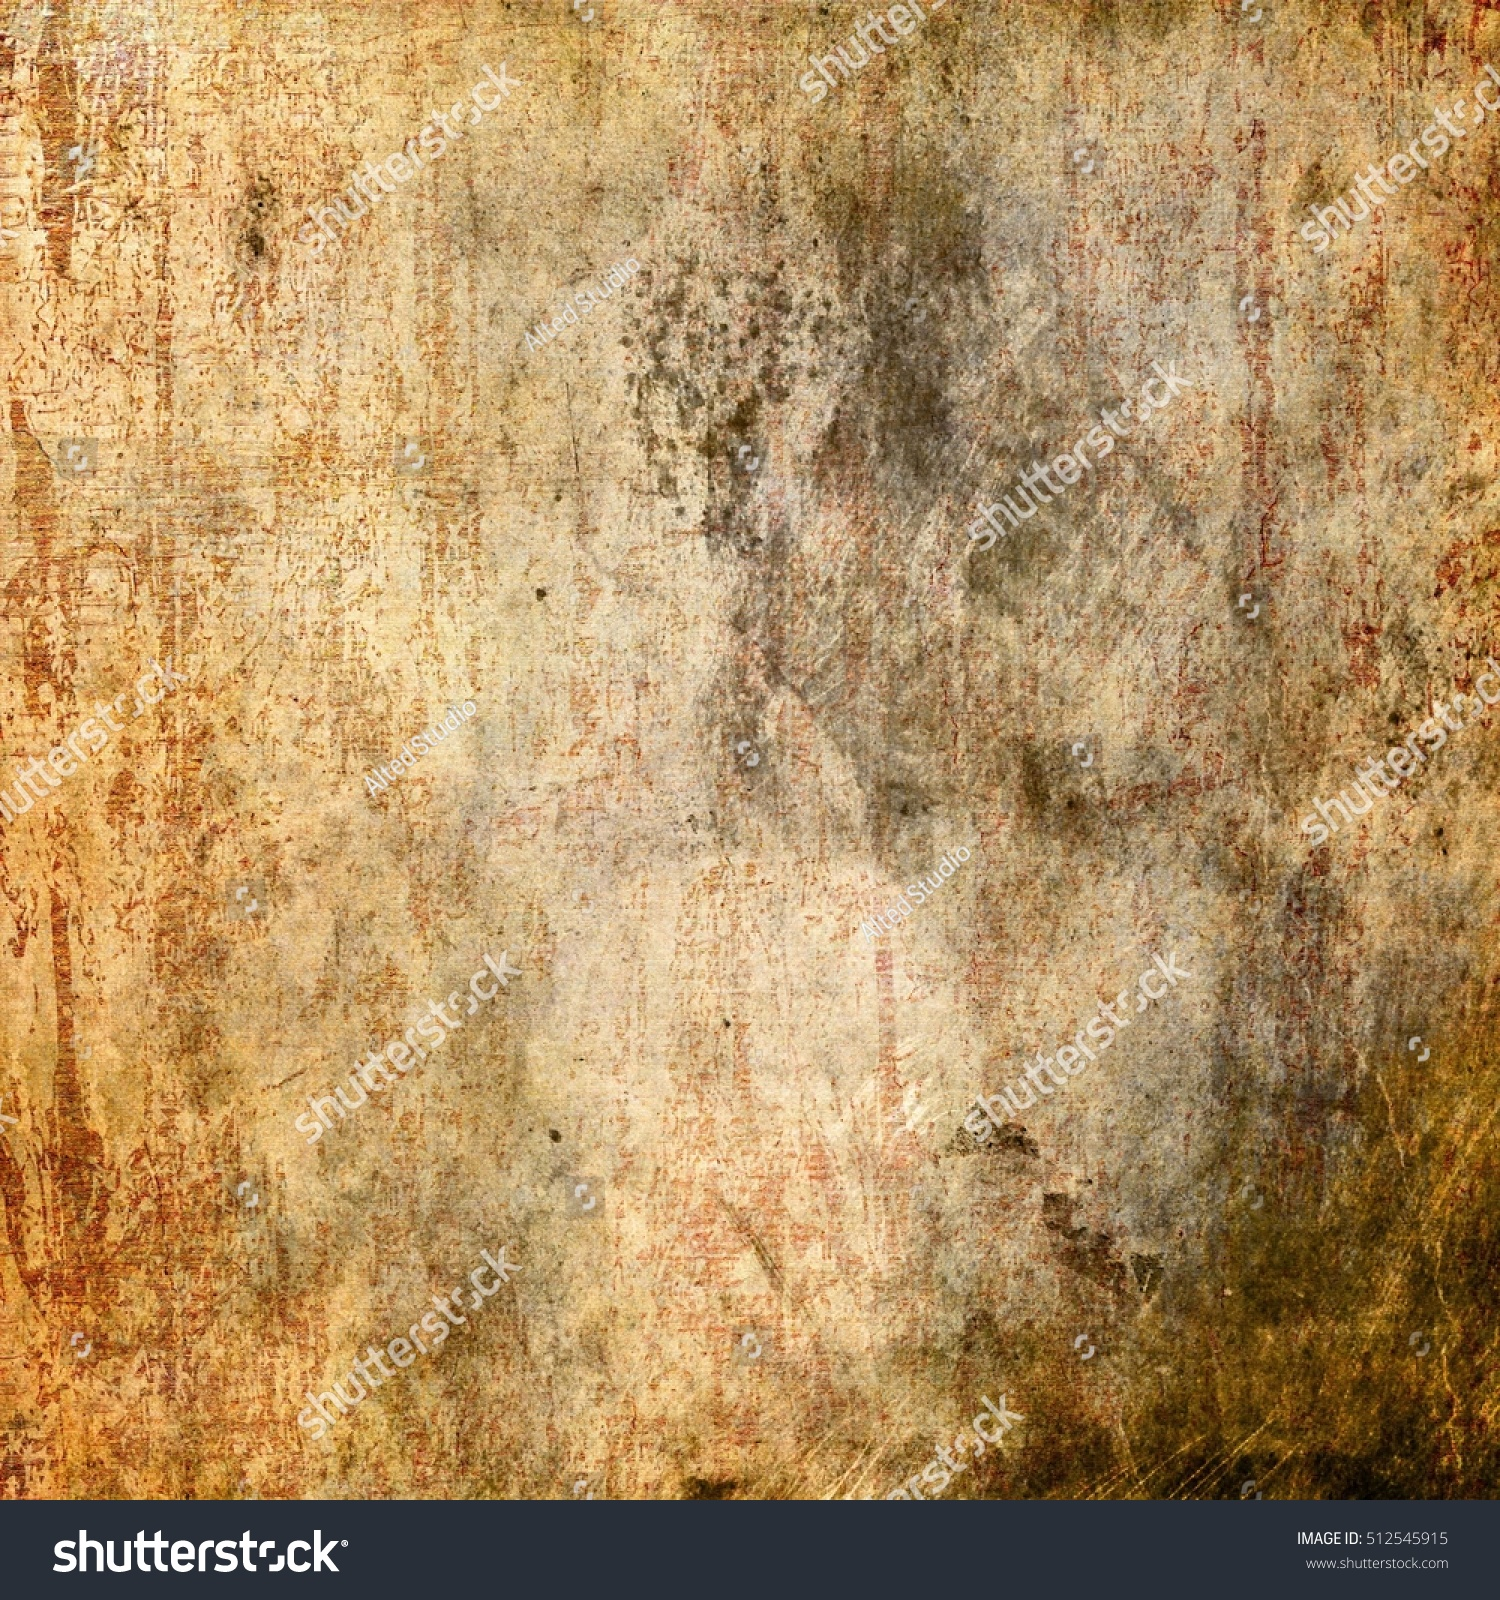 Grunge Wall Highly Detailed Textured Background Stock